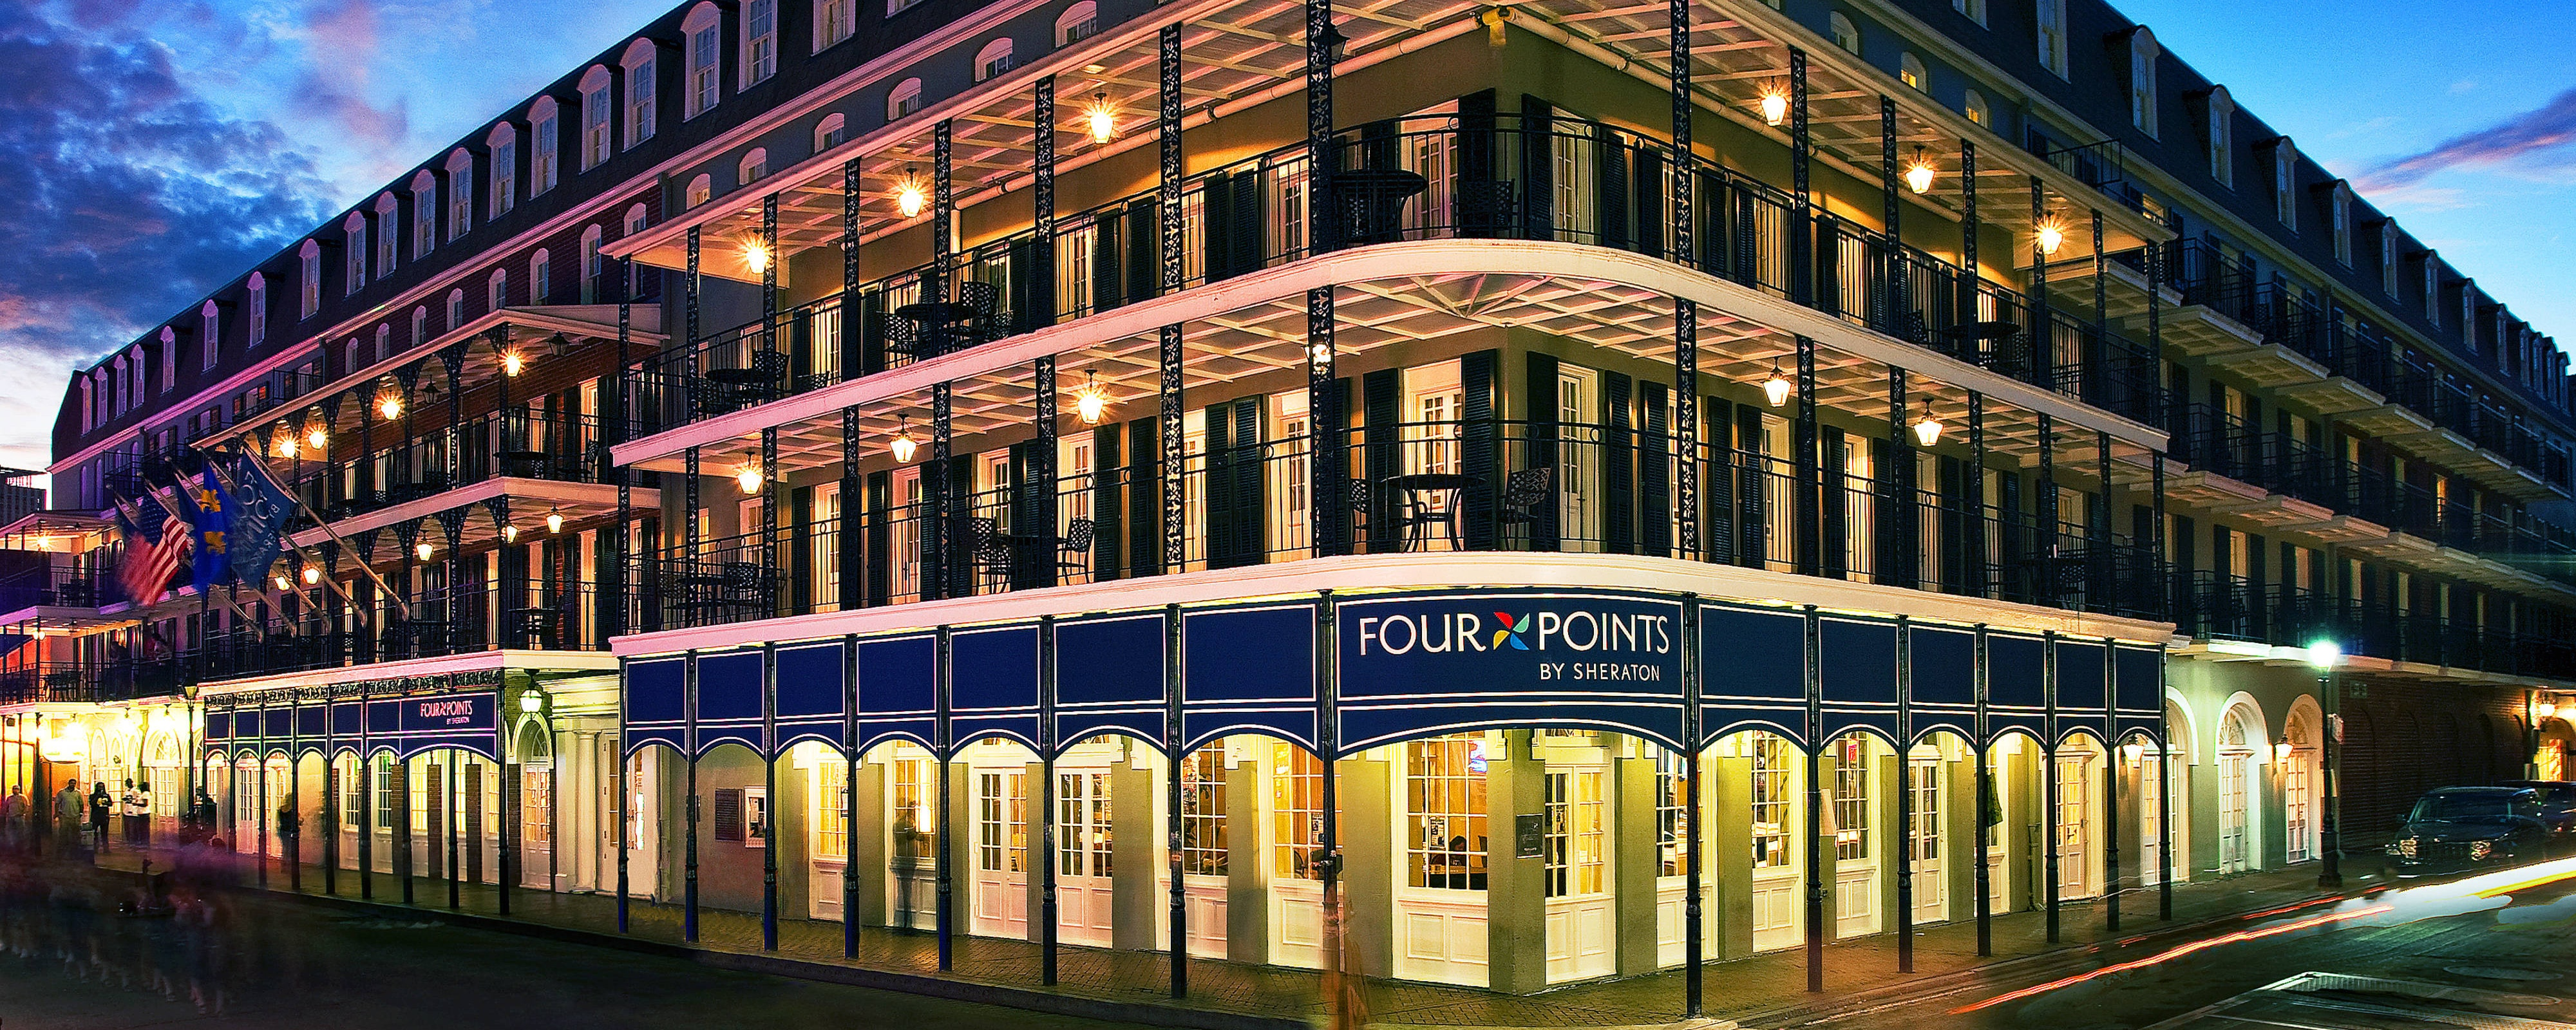 Hotel on Bourbon Street in New Orleans | Four Points by ... on map of excalibur, map of cherokee street, map of sodium street, map of hard rock, map of dunes, map of romance, map of new haven street, map of americana, map of julia street cruise terminal, map of st. charles avenue, map of louis armstrong park, map of driftwood, map of geary street, map of holiday, map of boulder station, map of harrah's, map of eclipse, map of sam's town, map of blue bayou water park, map of tchoupitoulas street,